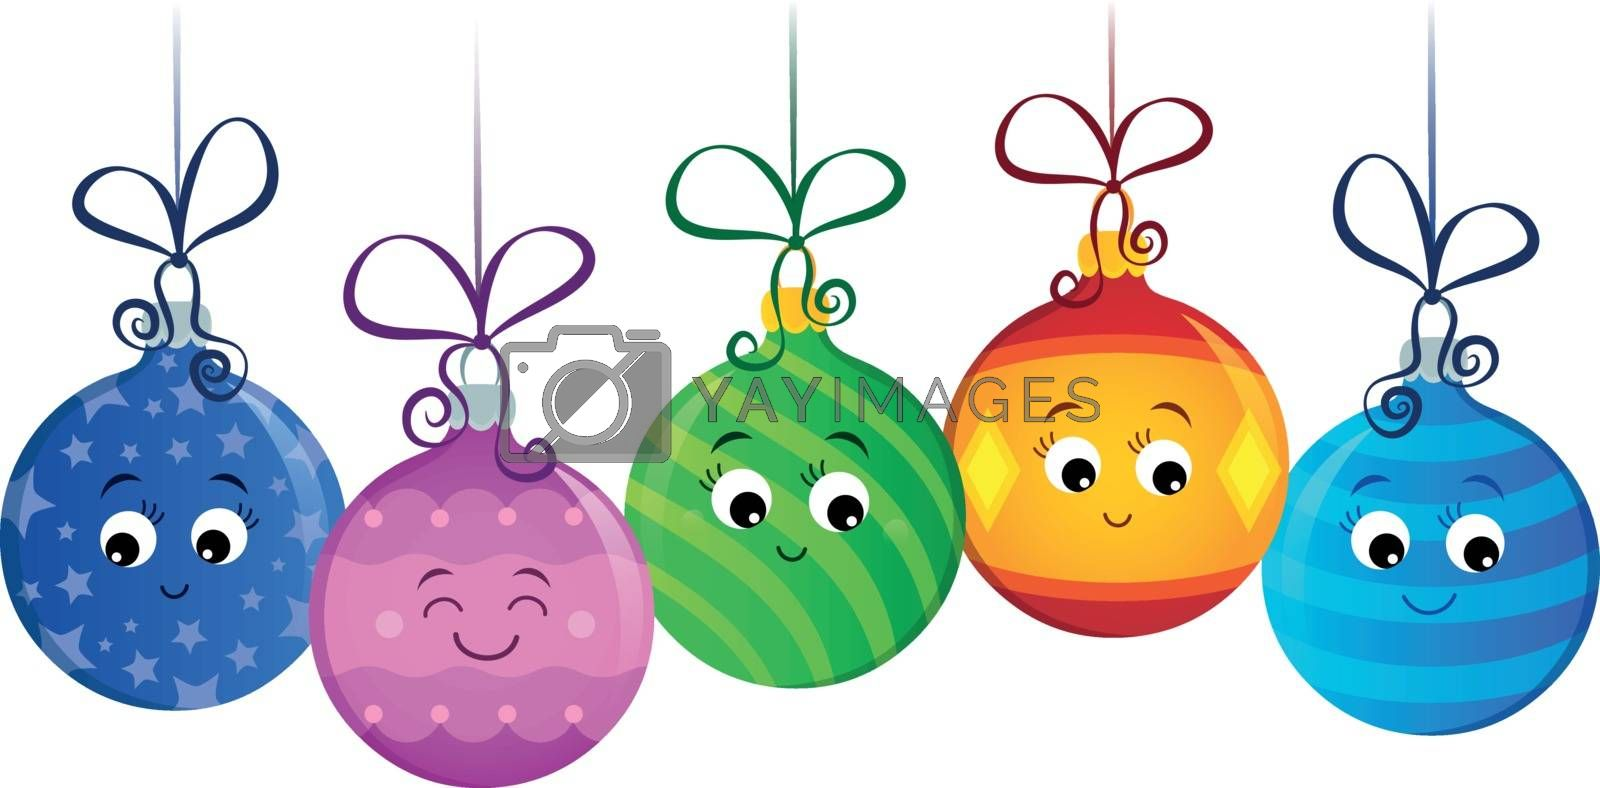 Stylized Christmas ornaments image 2 - eps10 vector illustration.